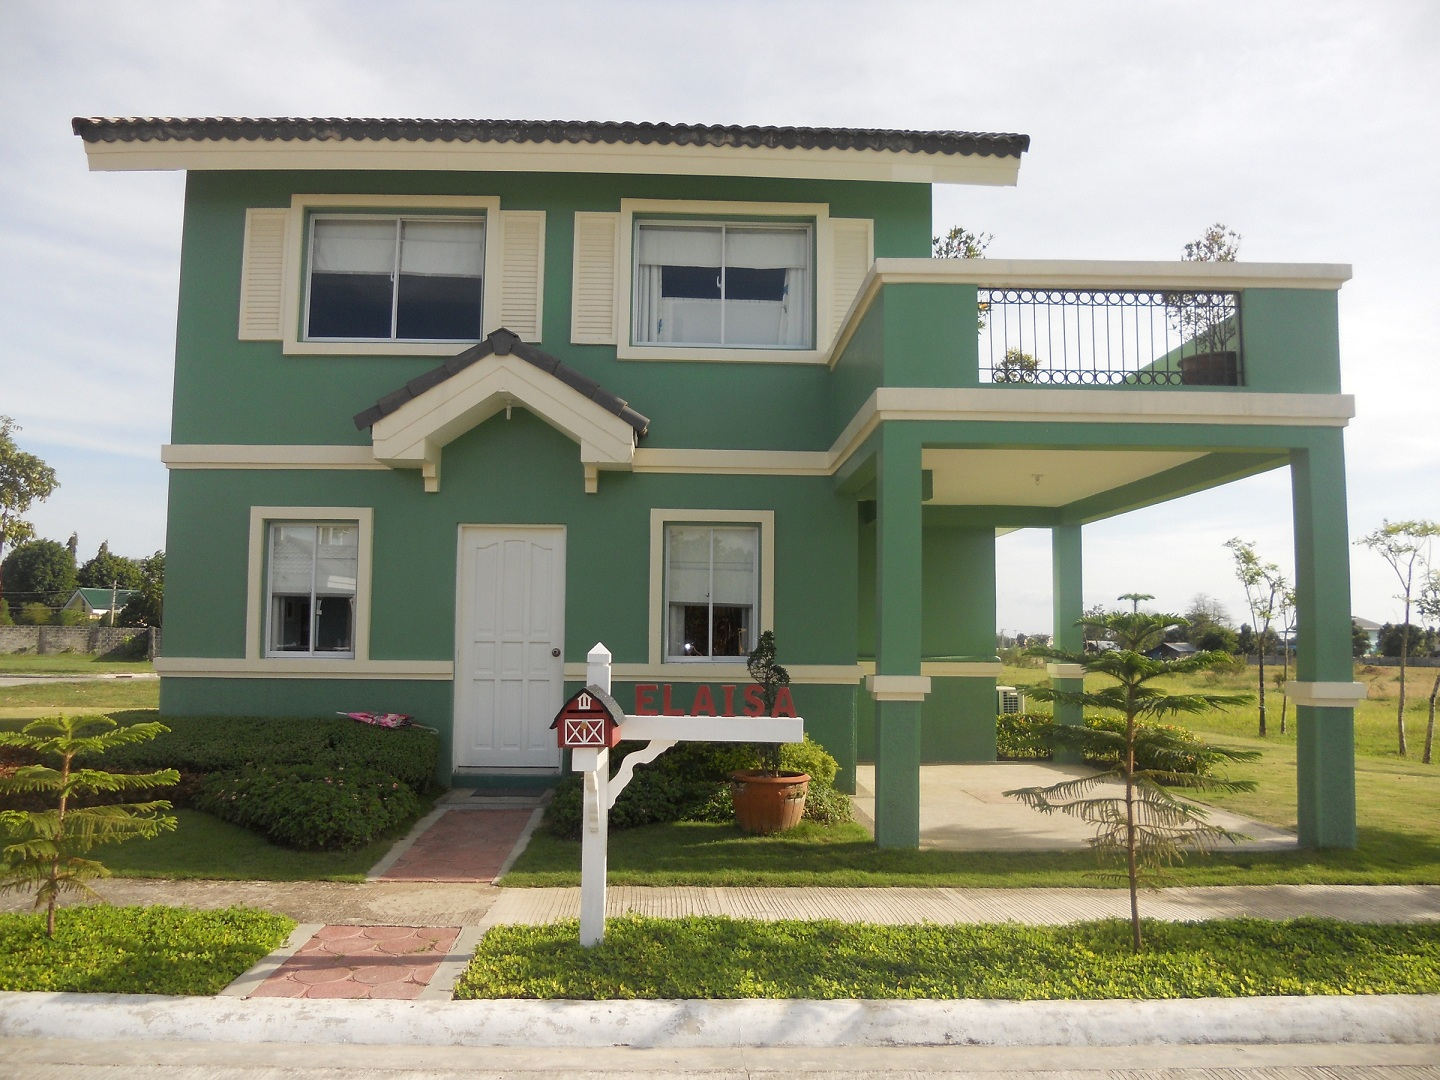 Camella home series iloilo within savannah iloilo by for Houses models